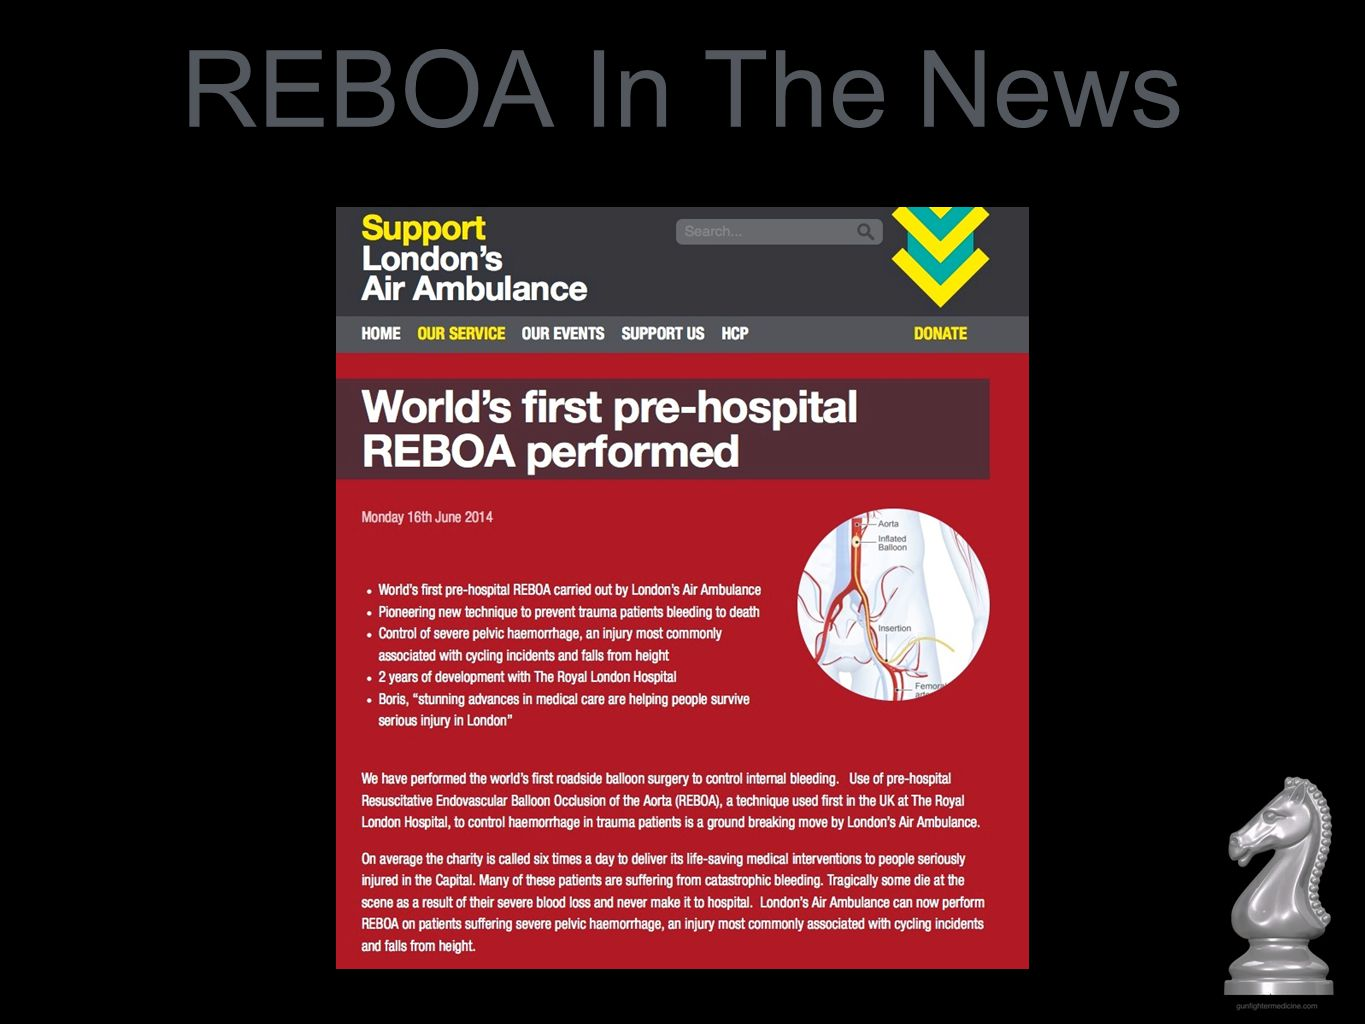 REBOA In The News